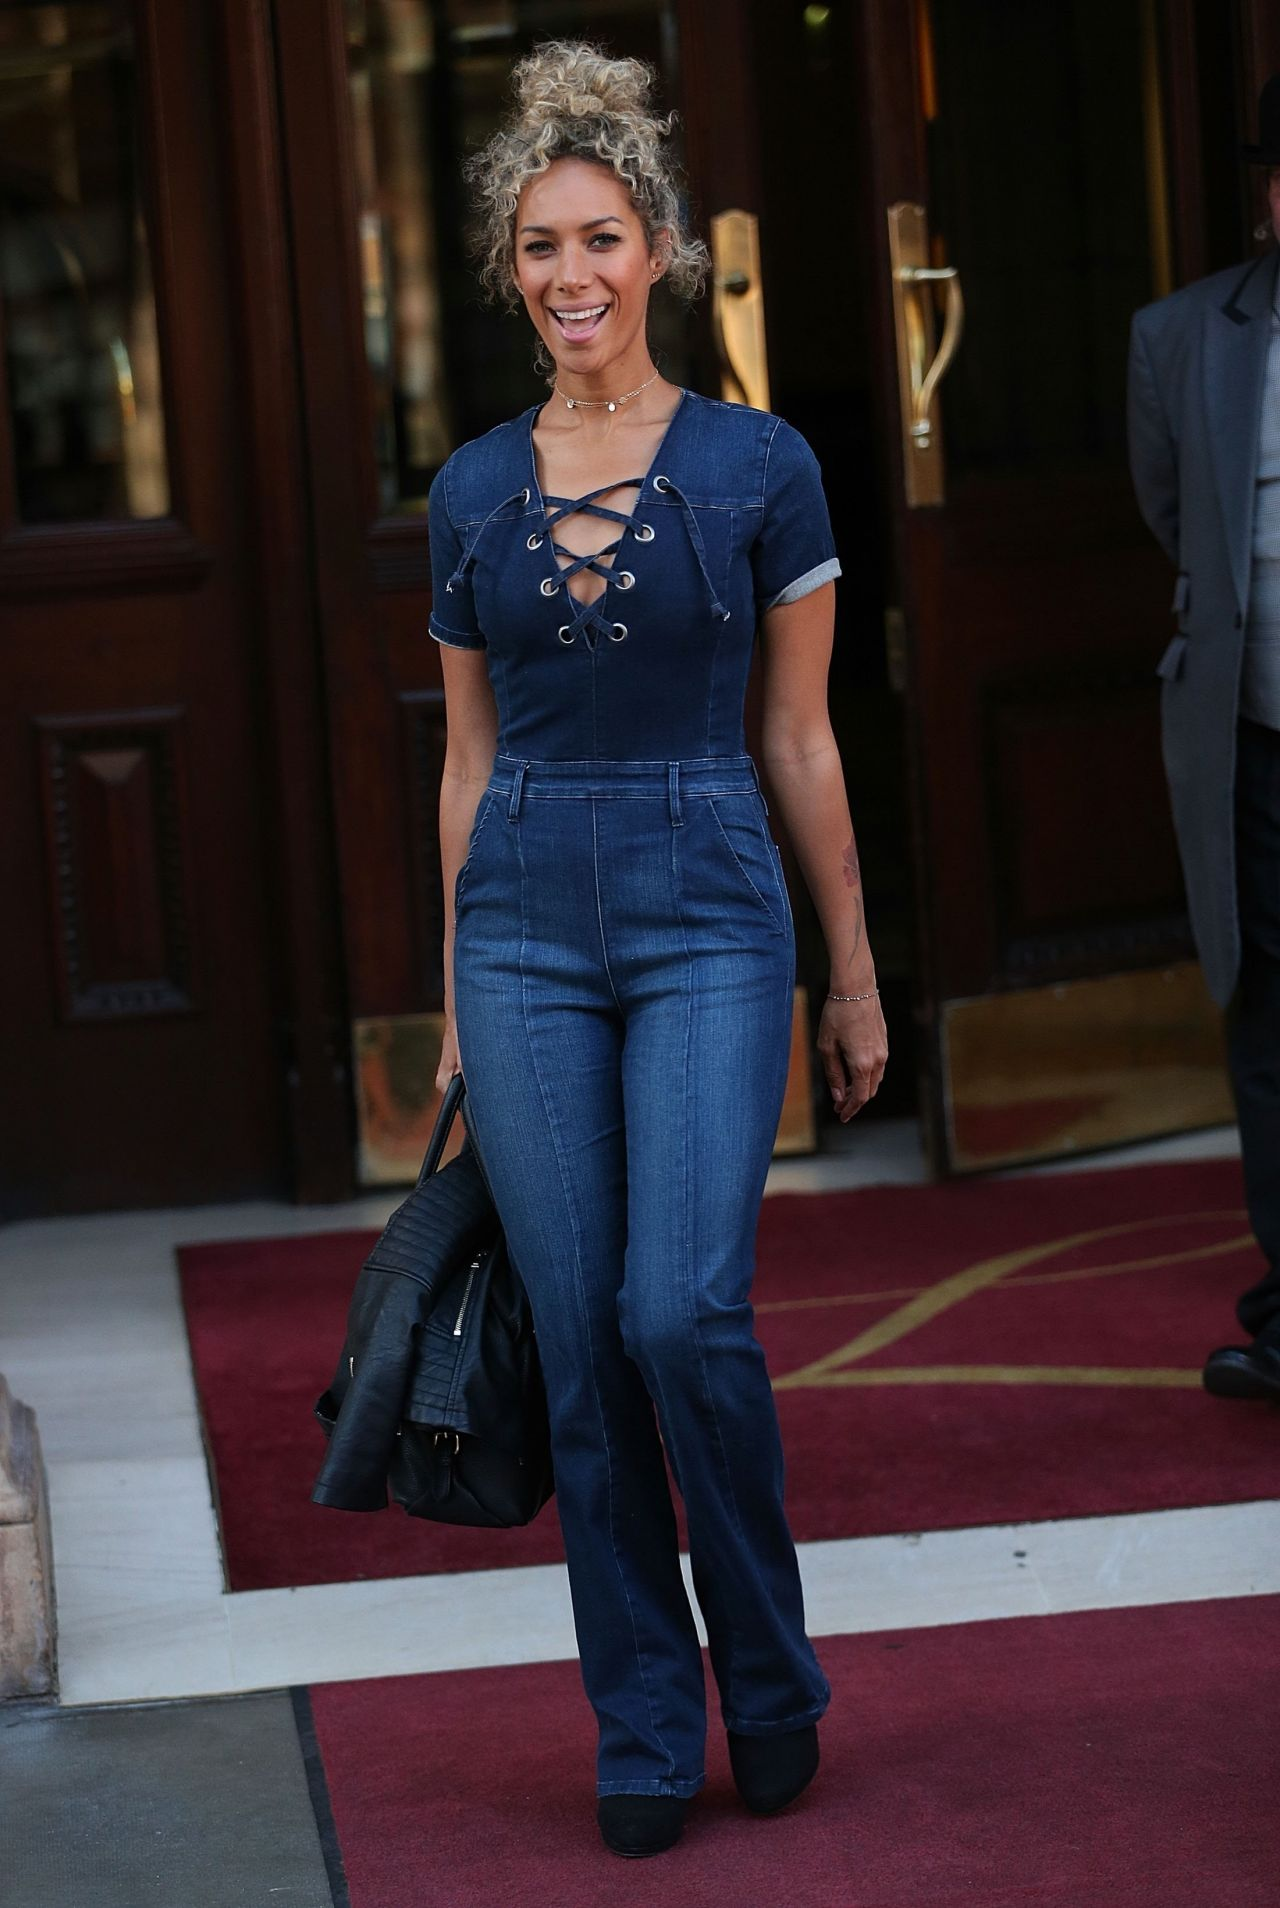 Leona Lewis In Jeans Leaving The Landmark Hotel In